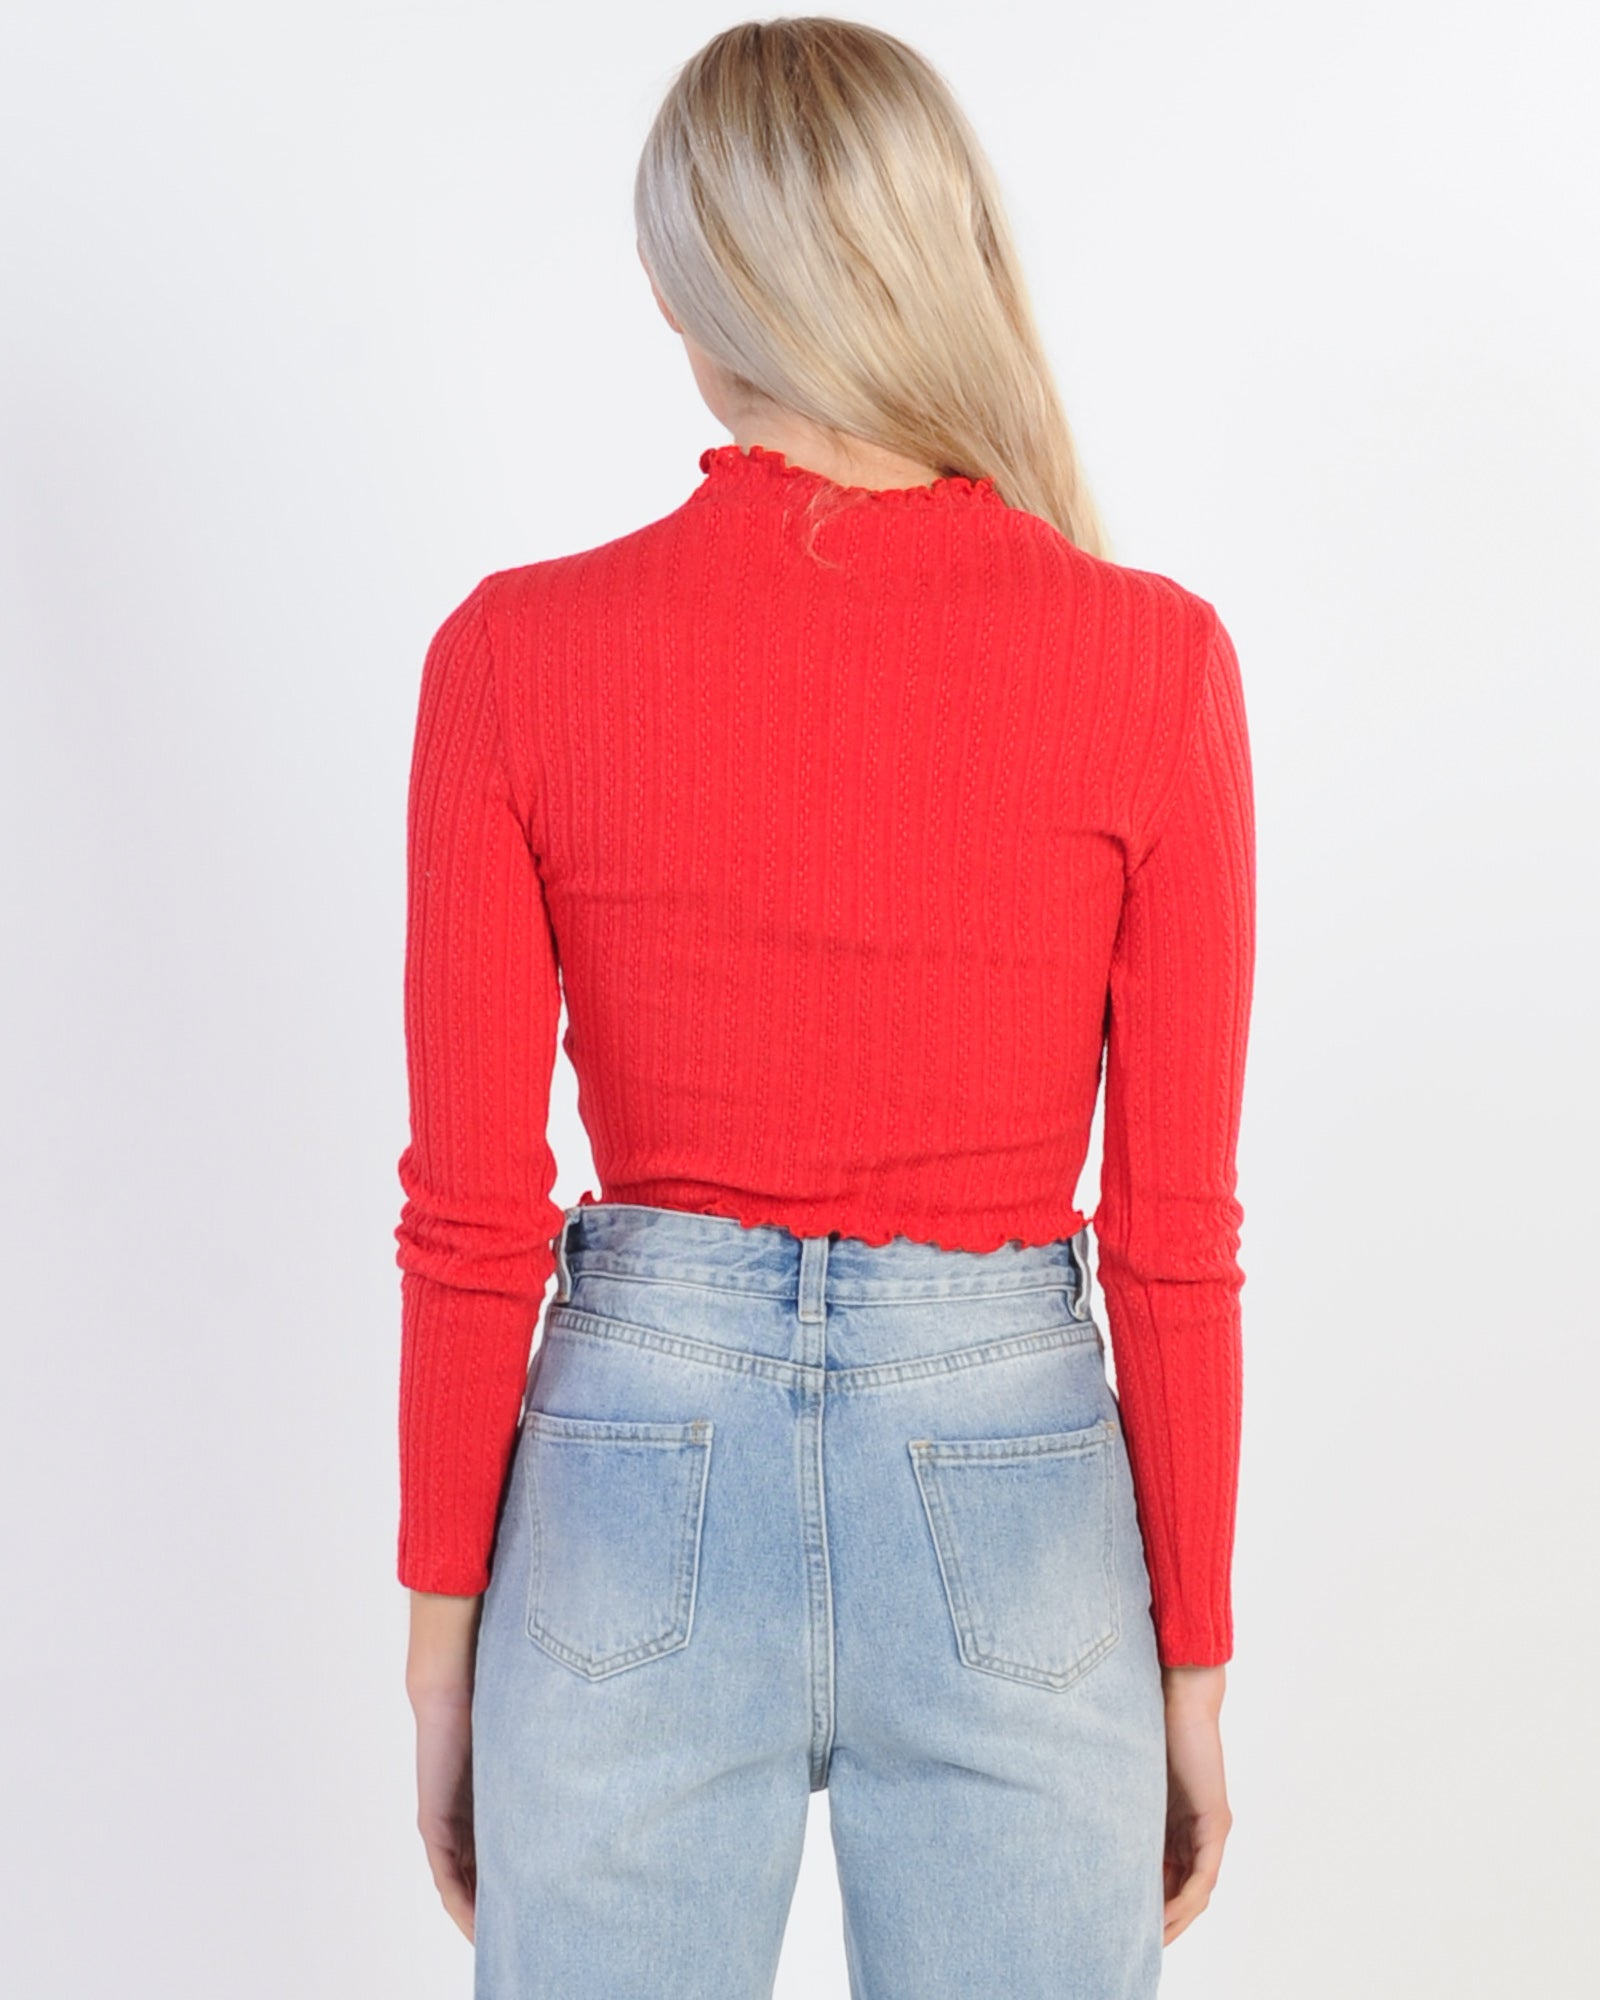 Private Party Top - Red